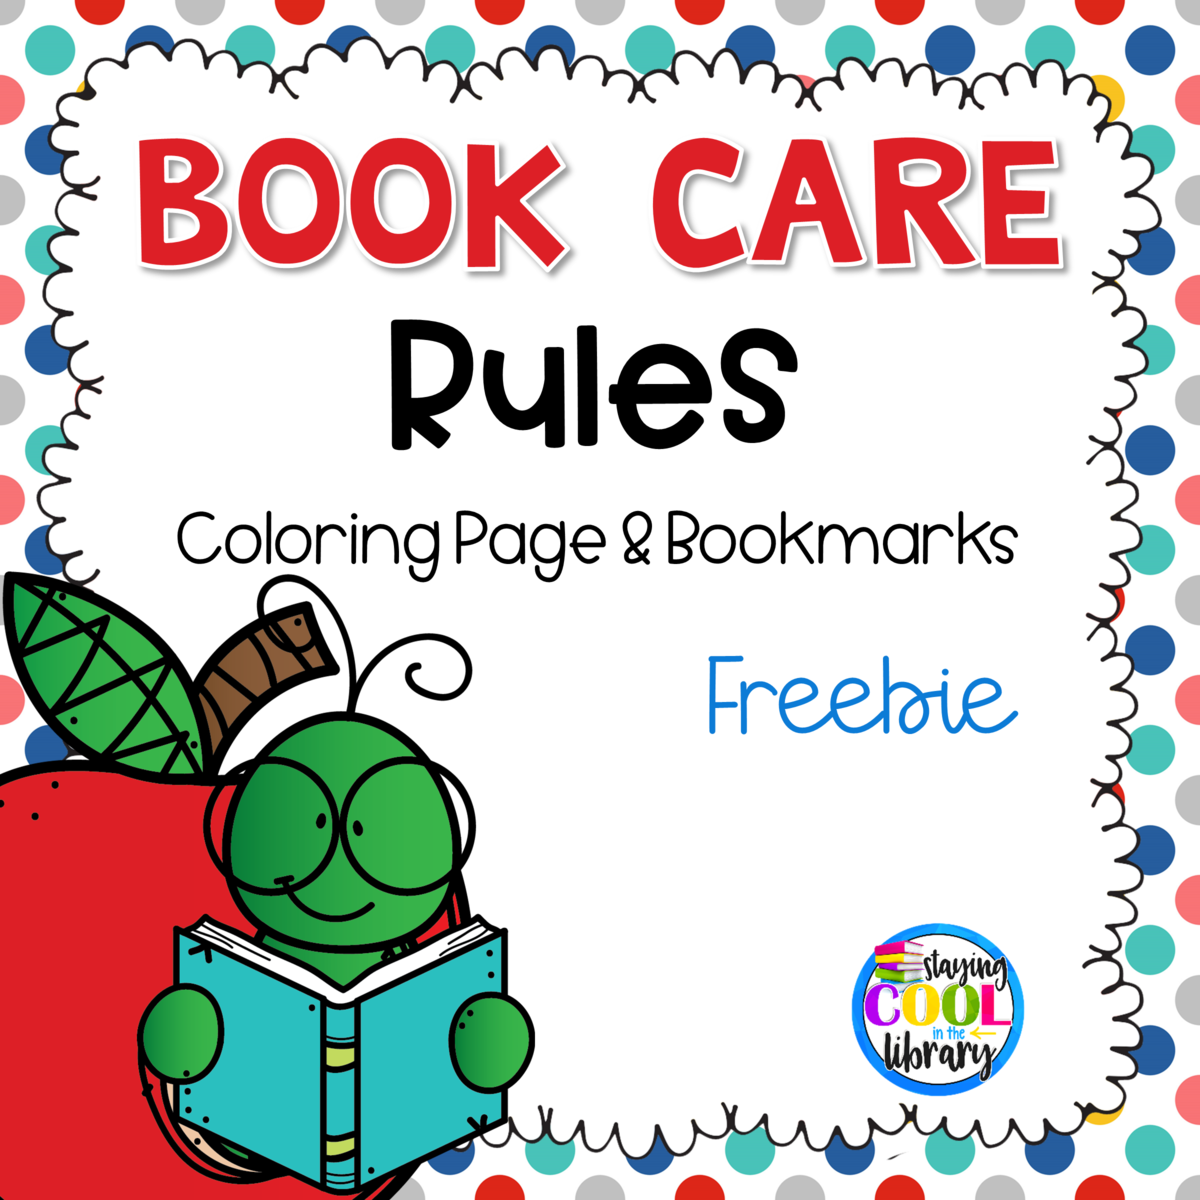 Book Care Rules Coloring Page Bookmarks Free Staying Cool In The Library Book Care Book Care Lessons Library Lesson Plans